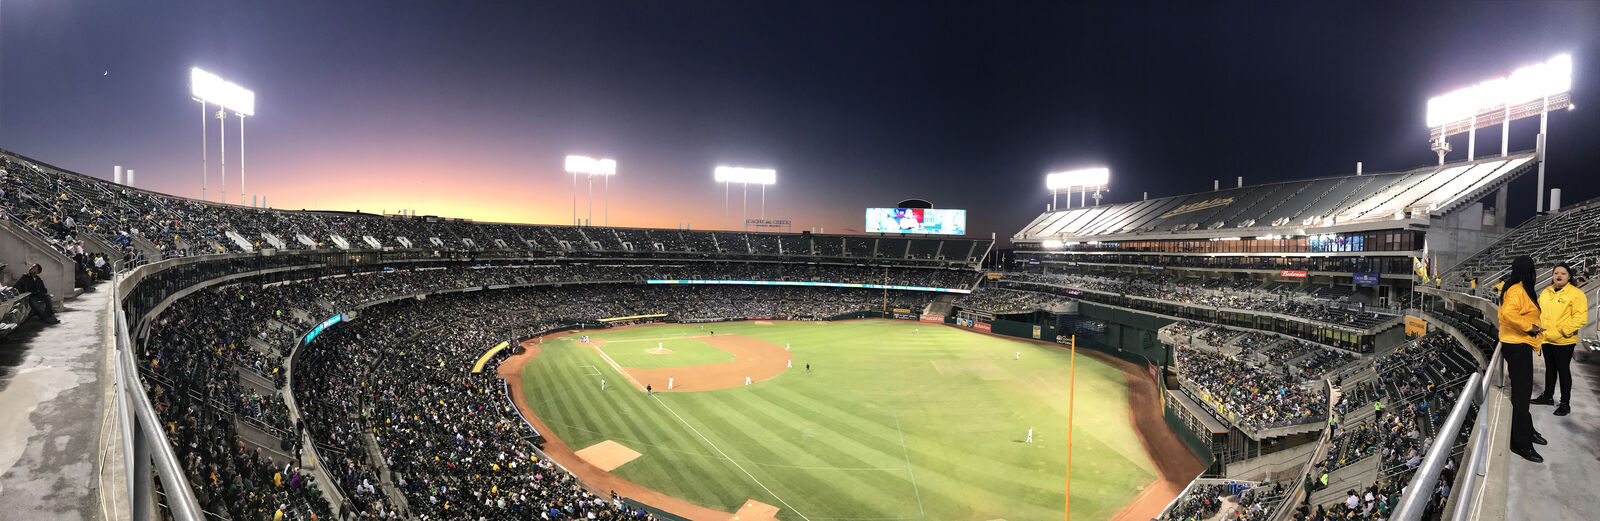 Arizona Diamondbacks at Oakland Athletics Tickets (Star Wars Fireworks)